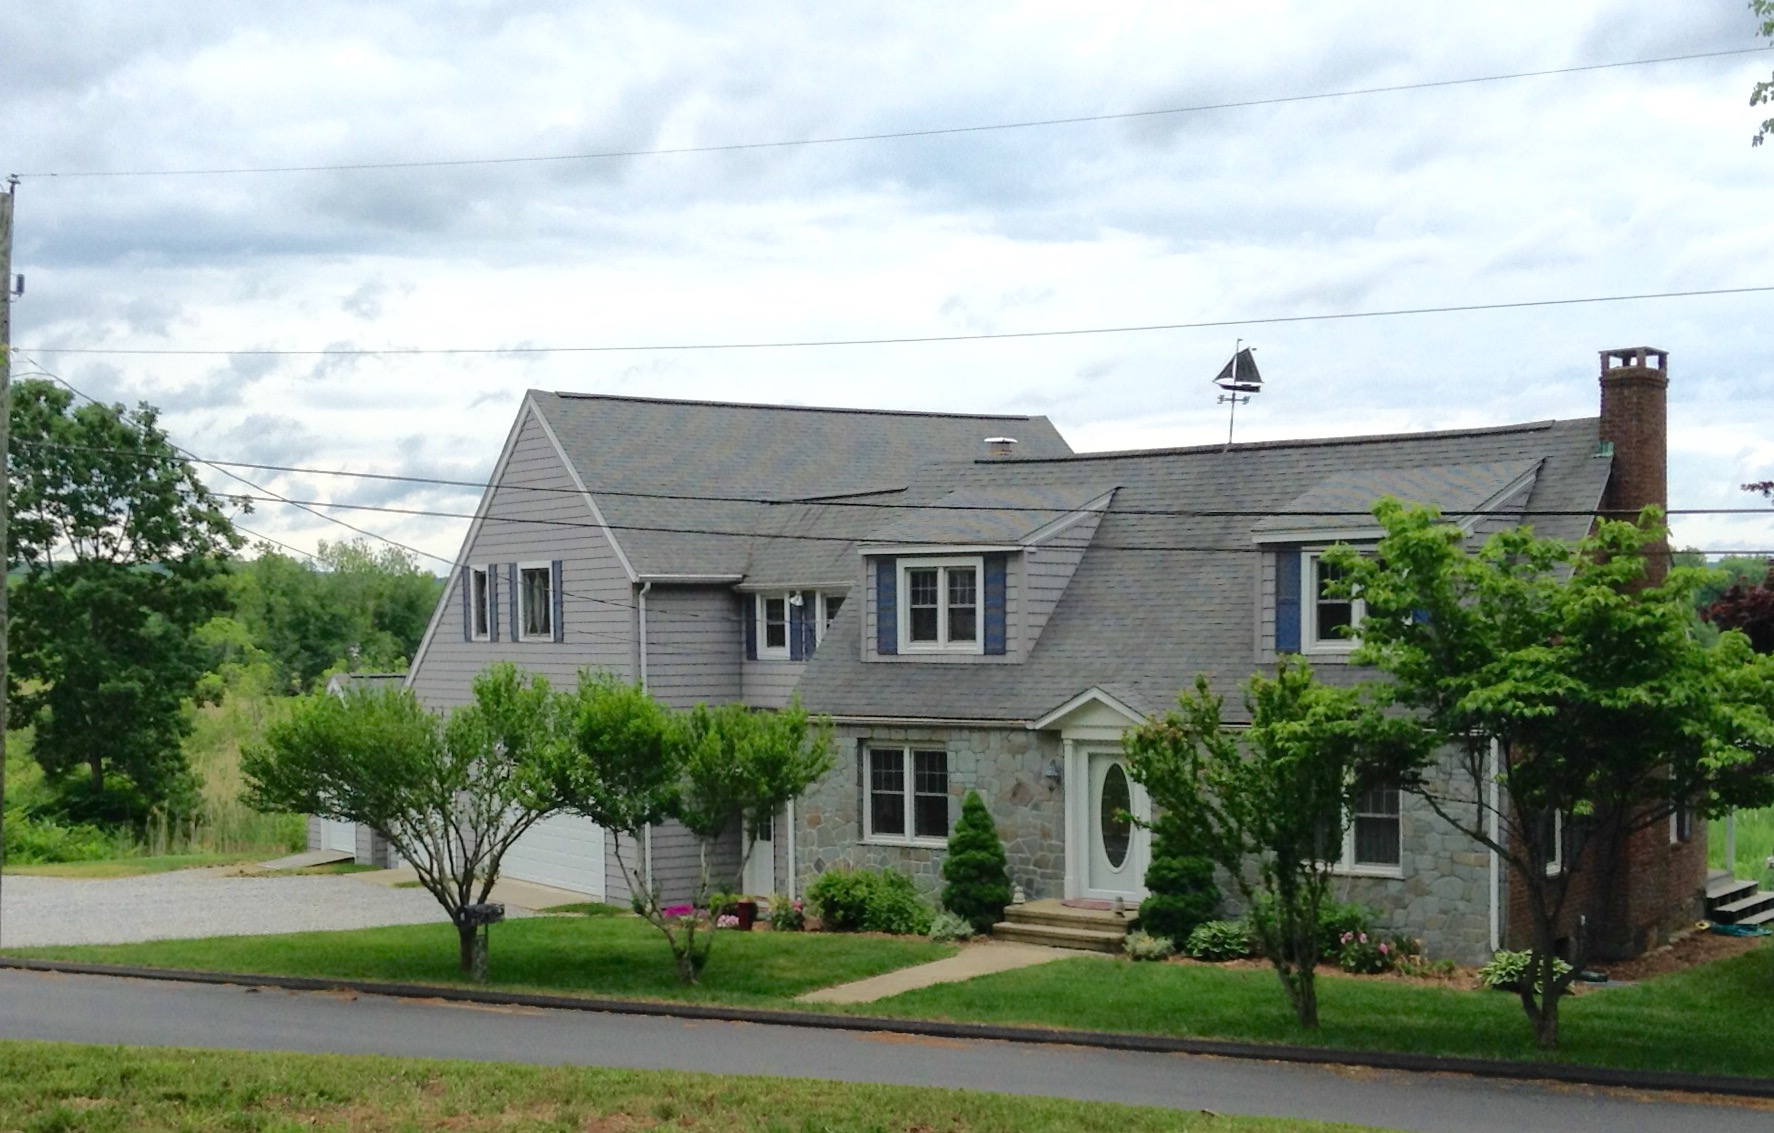 2 Dock Rd., Chester, Connecticut 06412